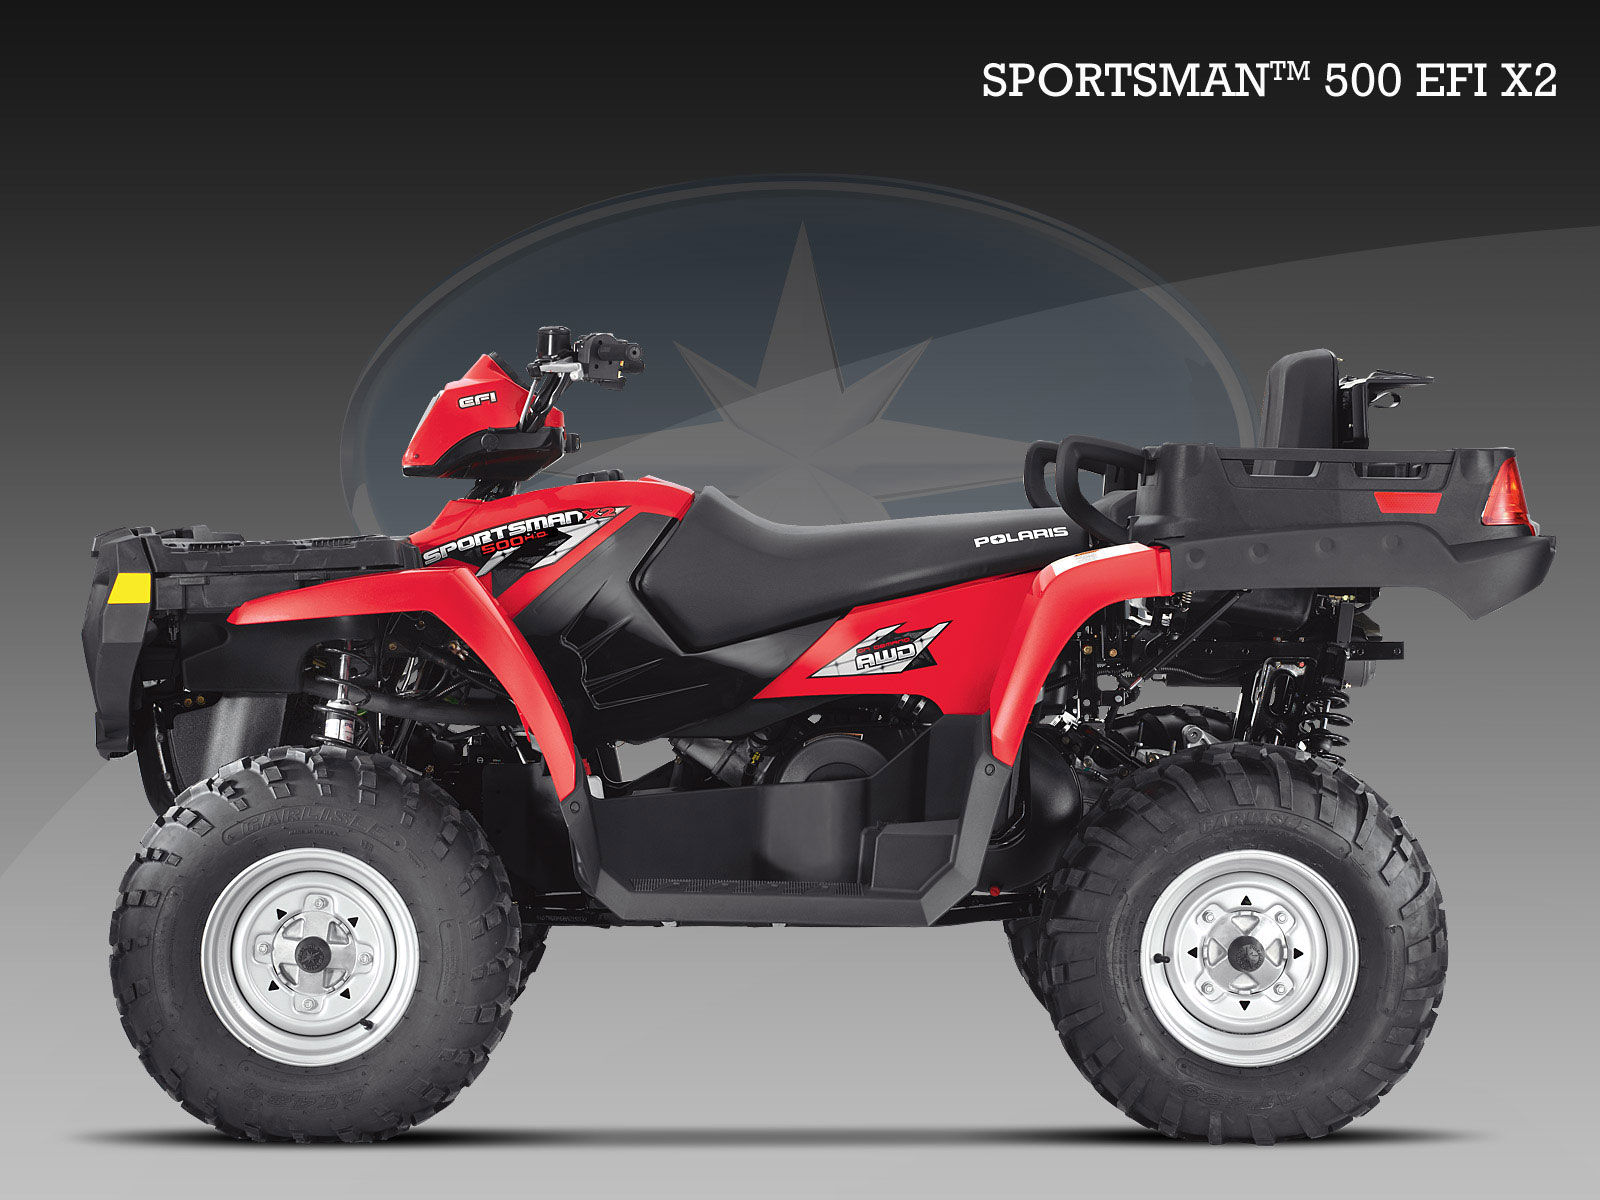 polaris sportsman 500 efi x2 specs 2008 2009 autoevolution. Black Bedroom Furniture Sets. Home Design Ideas